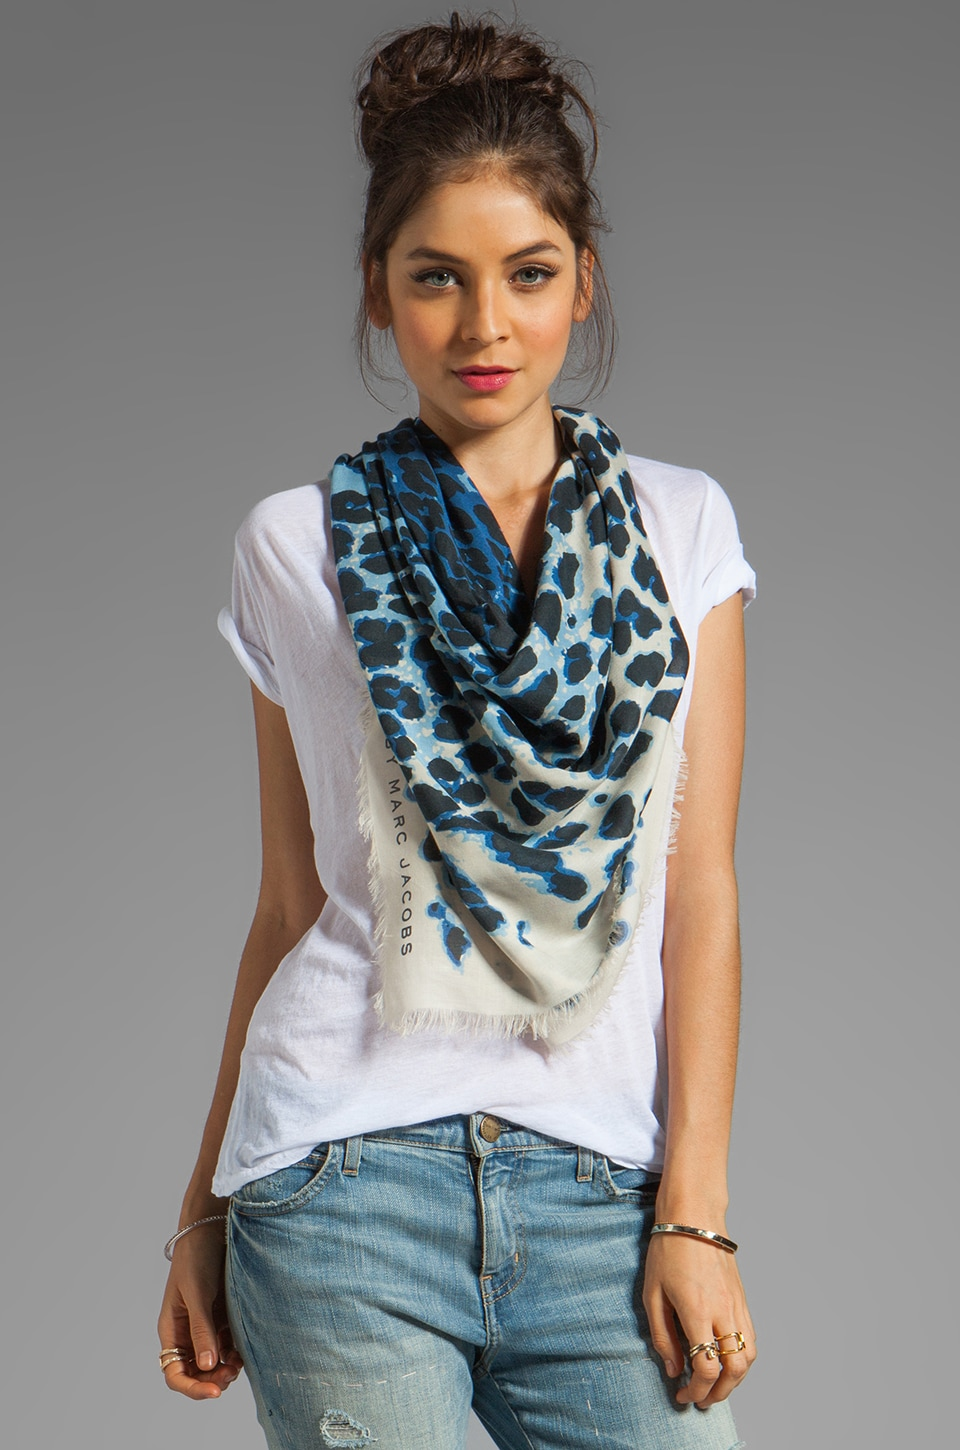 Marc by Marc Jacobs Jaguar Scarf in Pacific Blue Multi